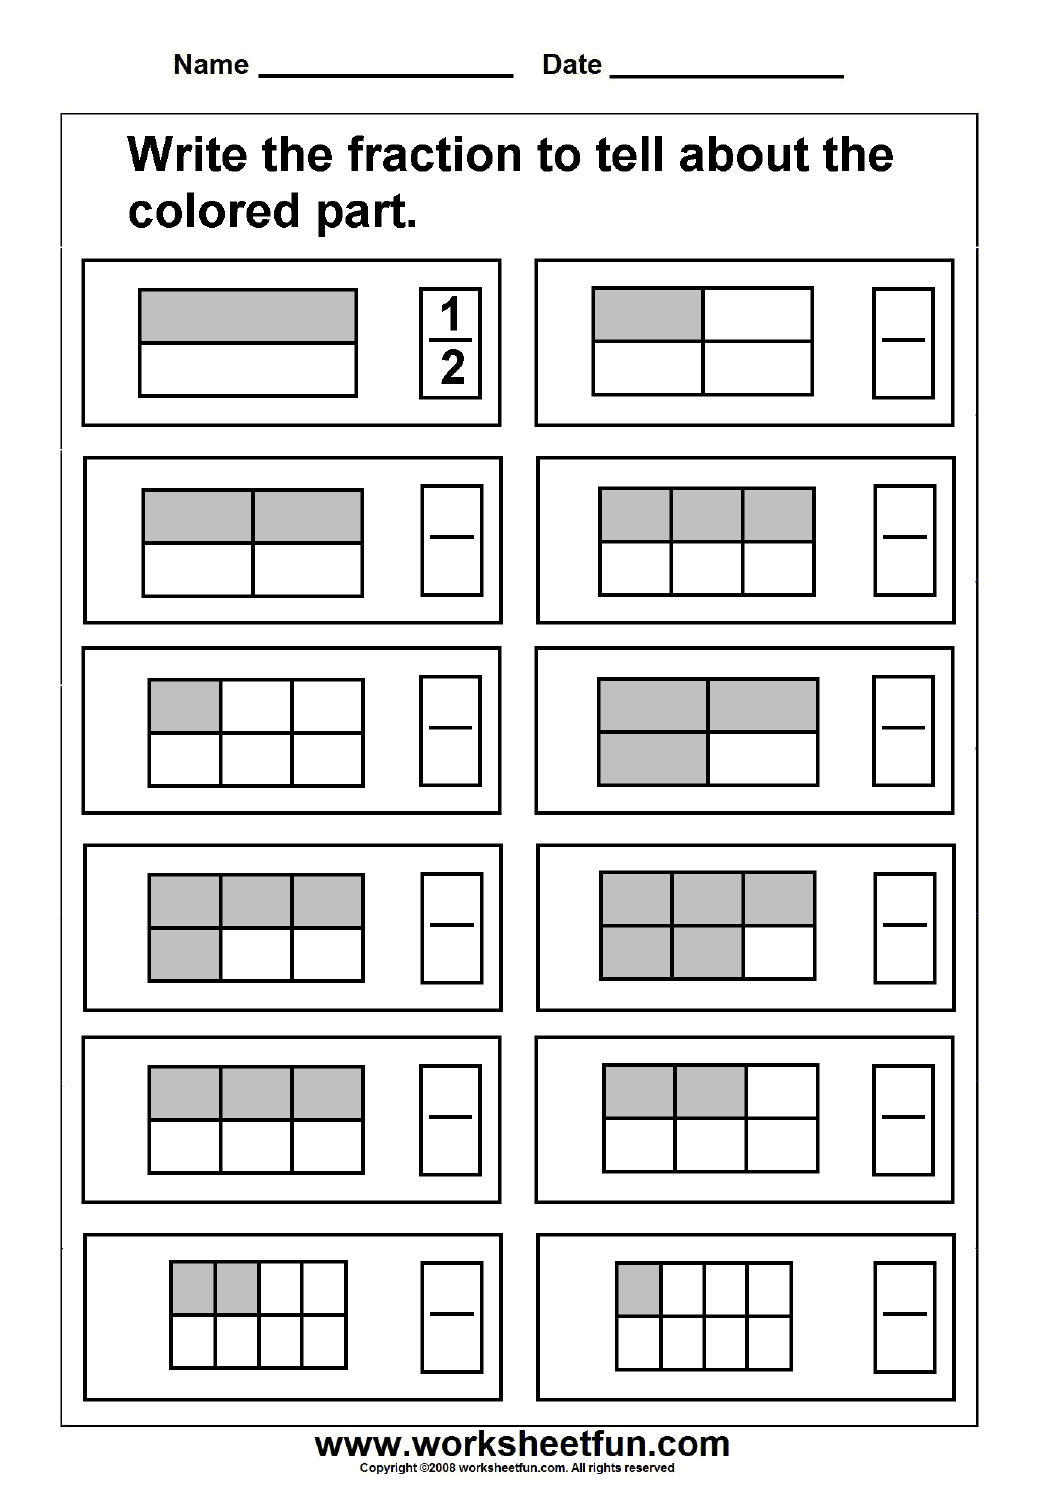 Worksheets Fraction Worksheets For 1st Grade fraction free printable worksheets worksheetfun model 3 worksheets